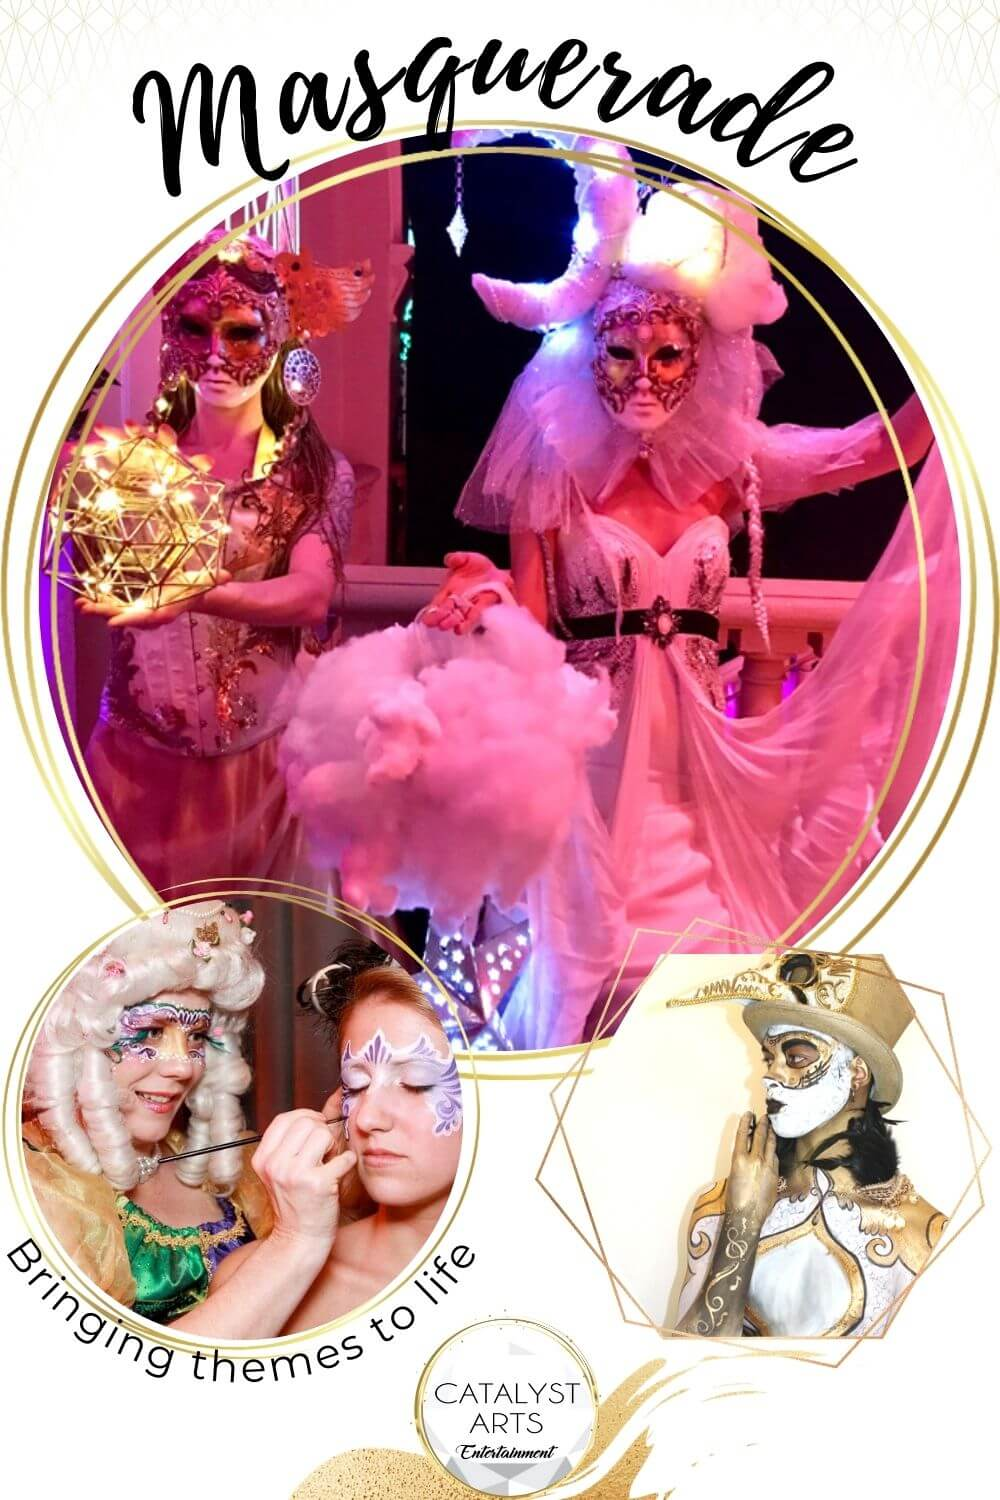 Masquerade ball themed entertainment by Catalyst Arts